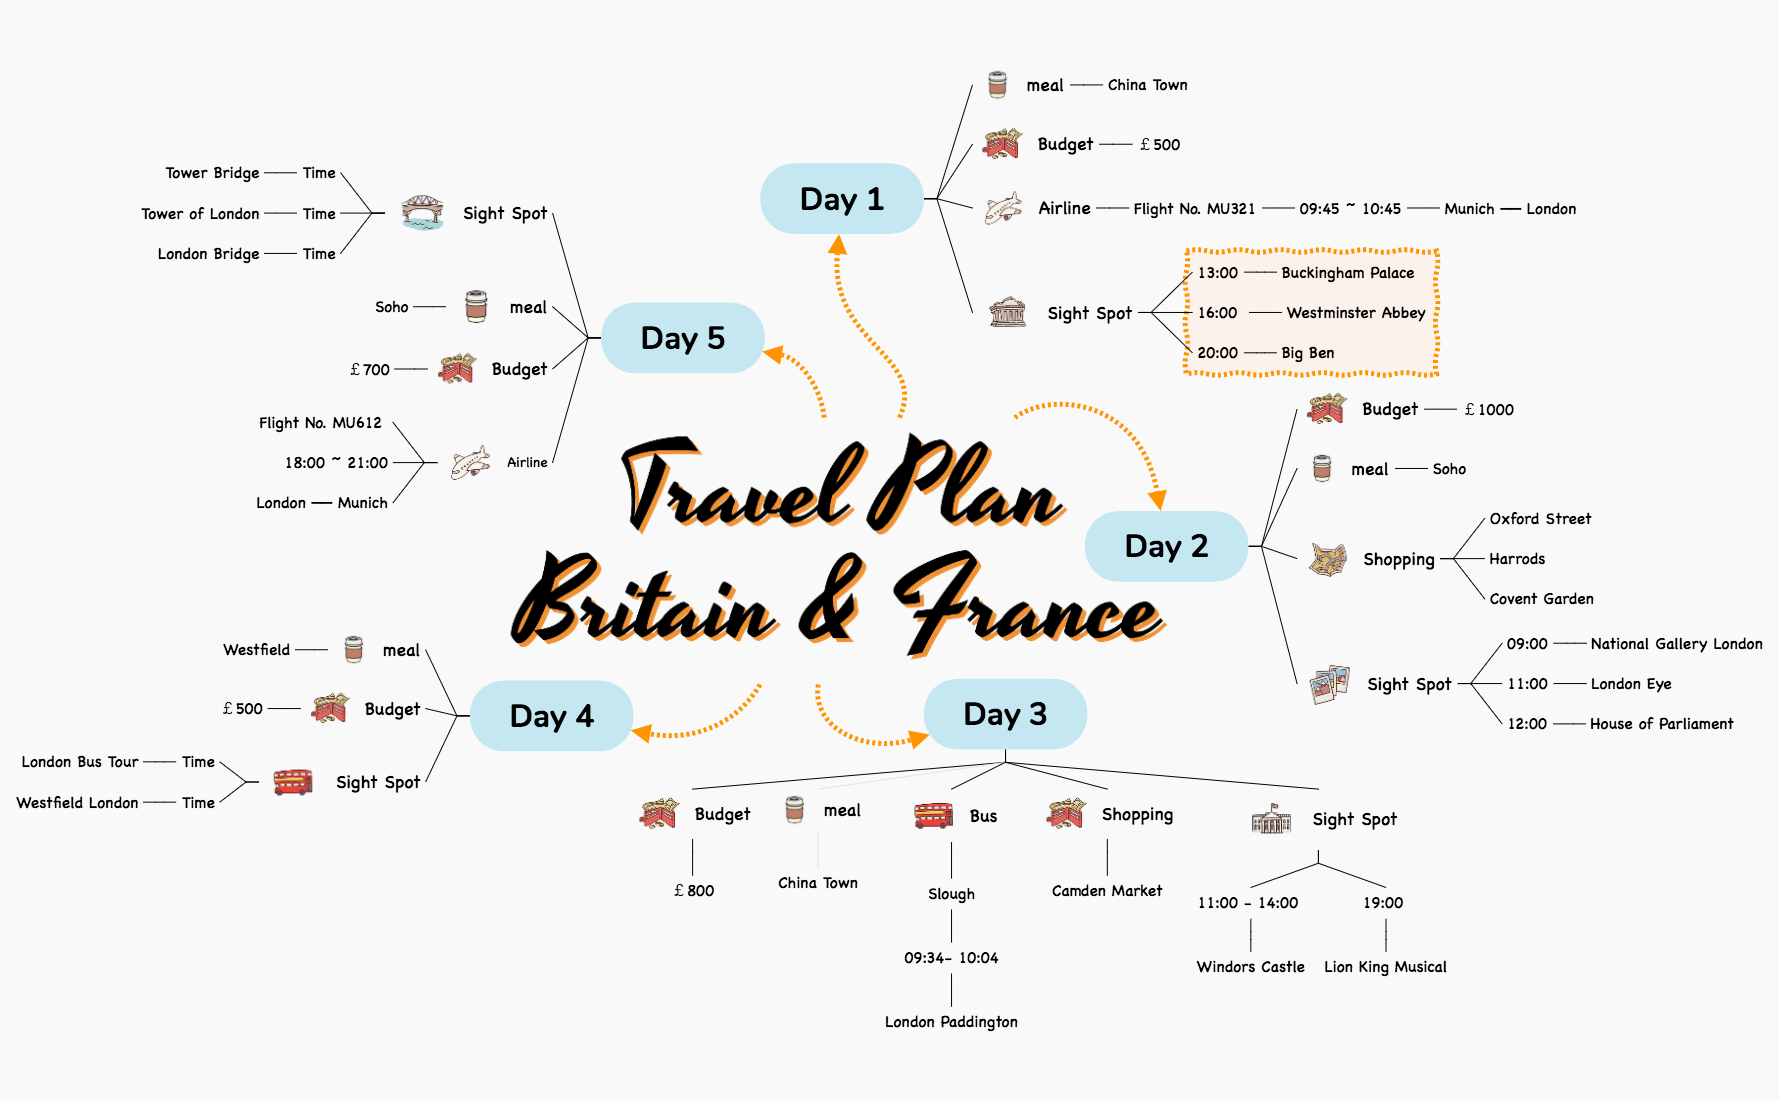 travel plan_xmindstructure